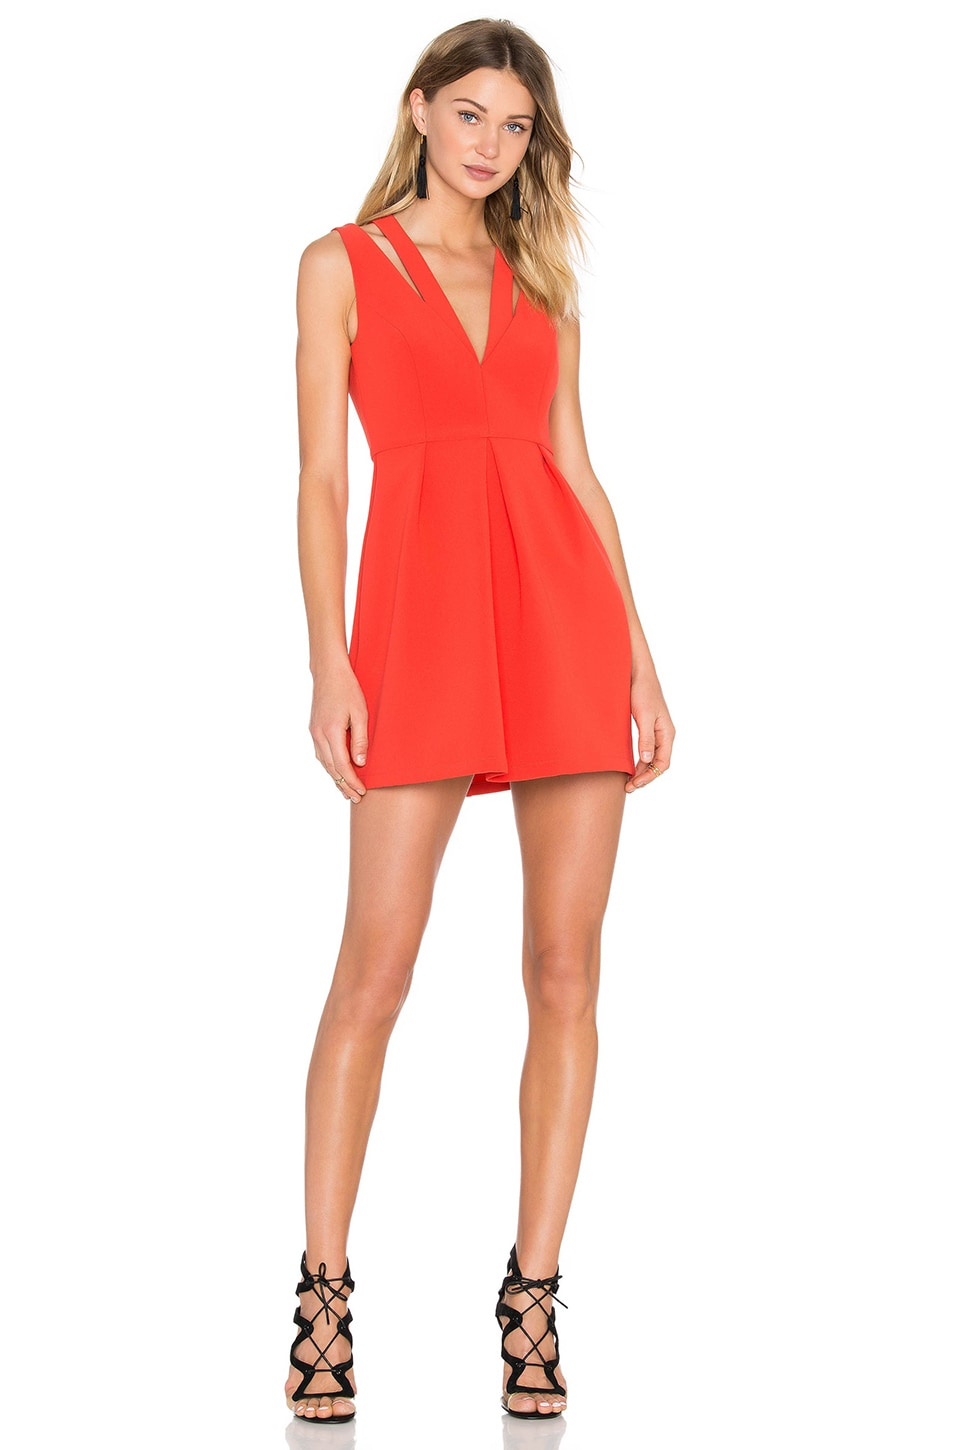 BCBGMAXAZRIA Clarye Deep V Dress in Bright Poppy